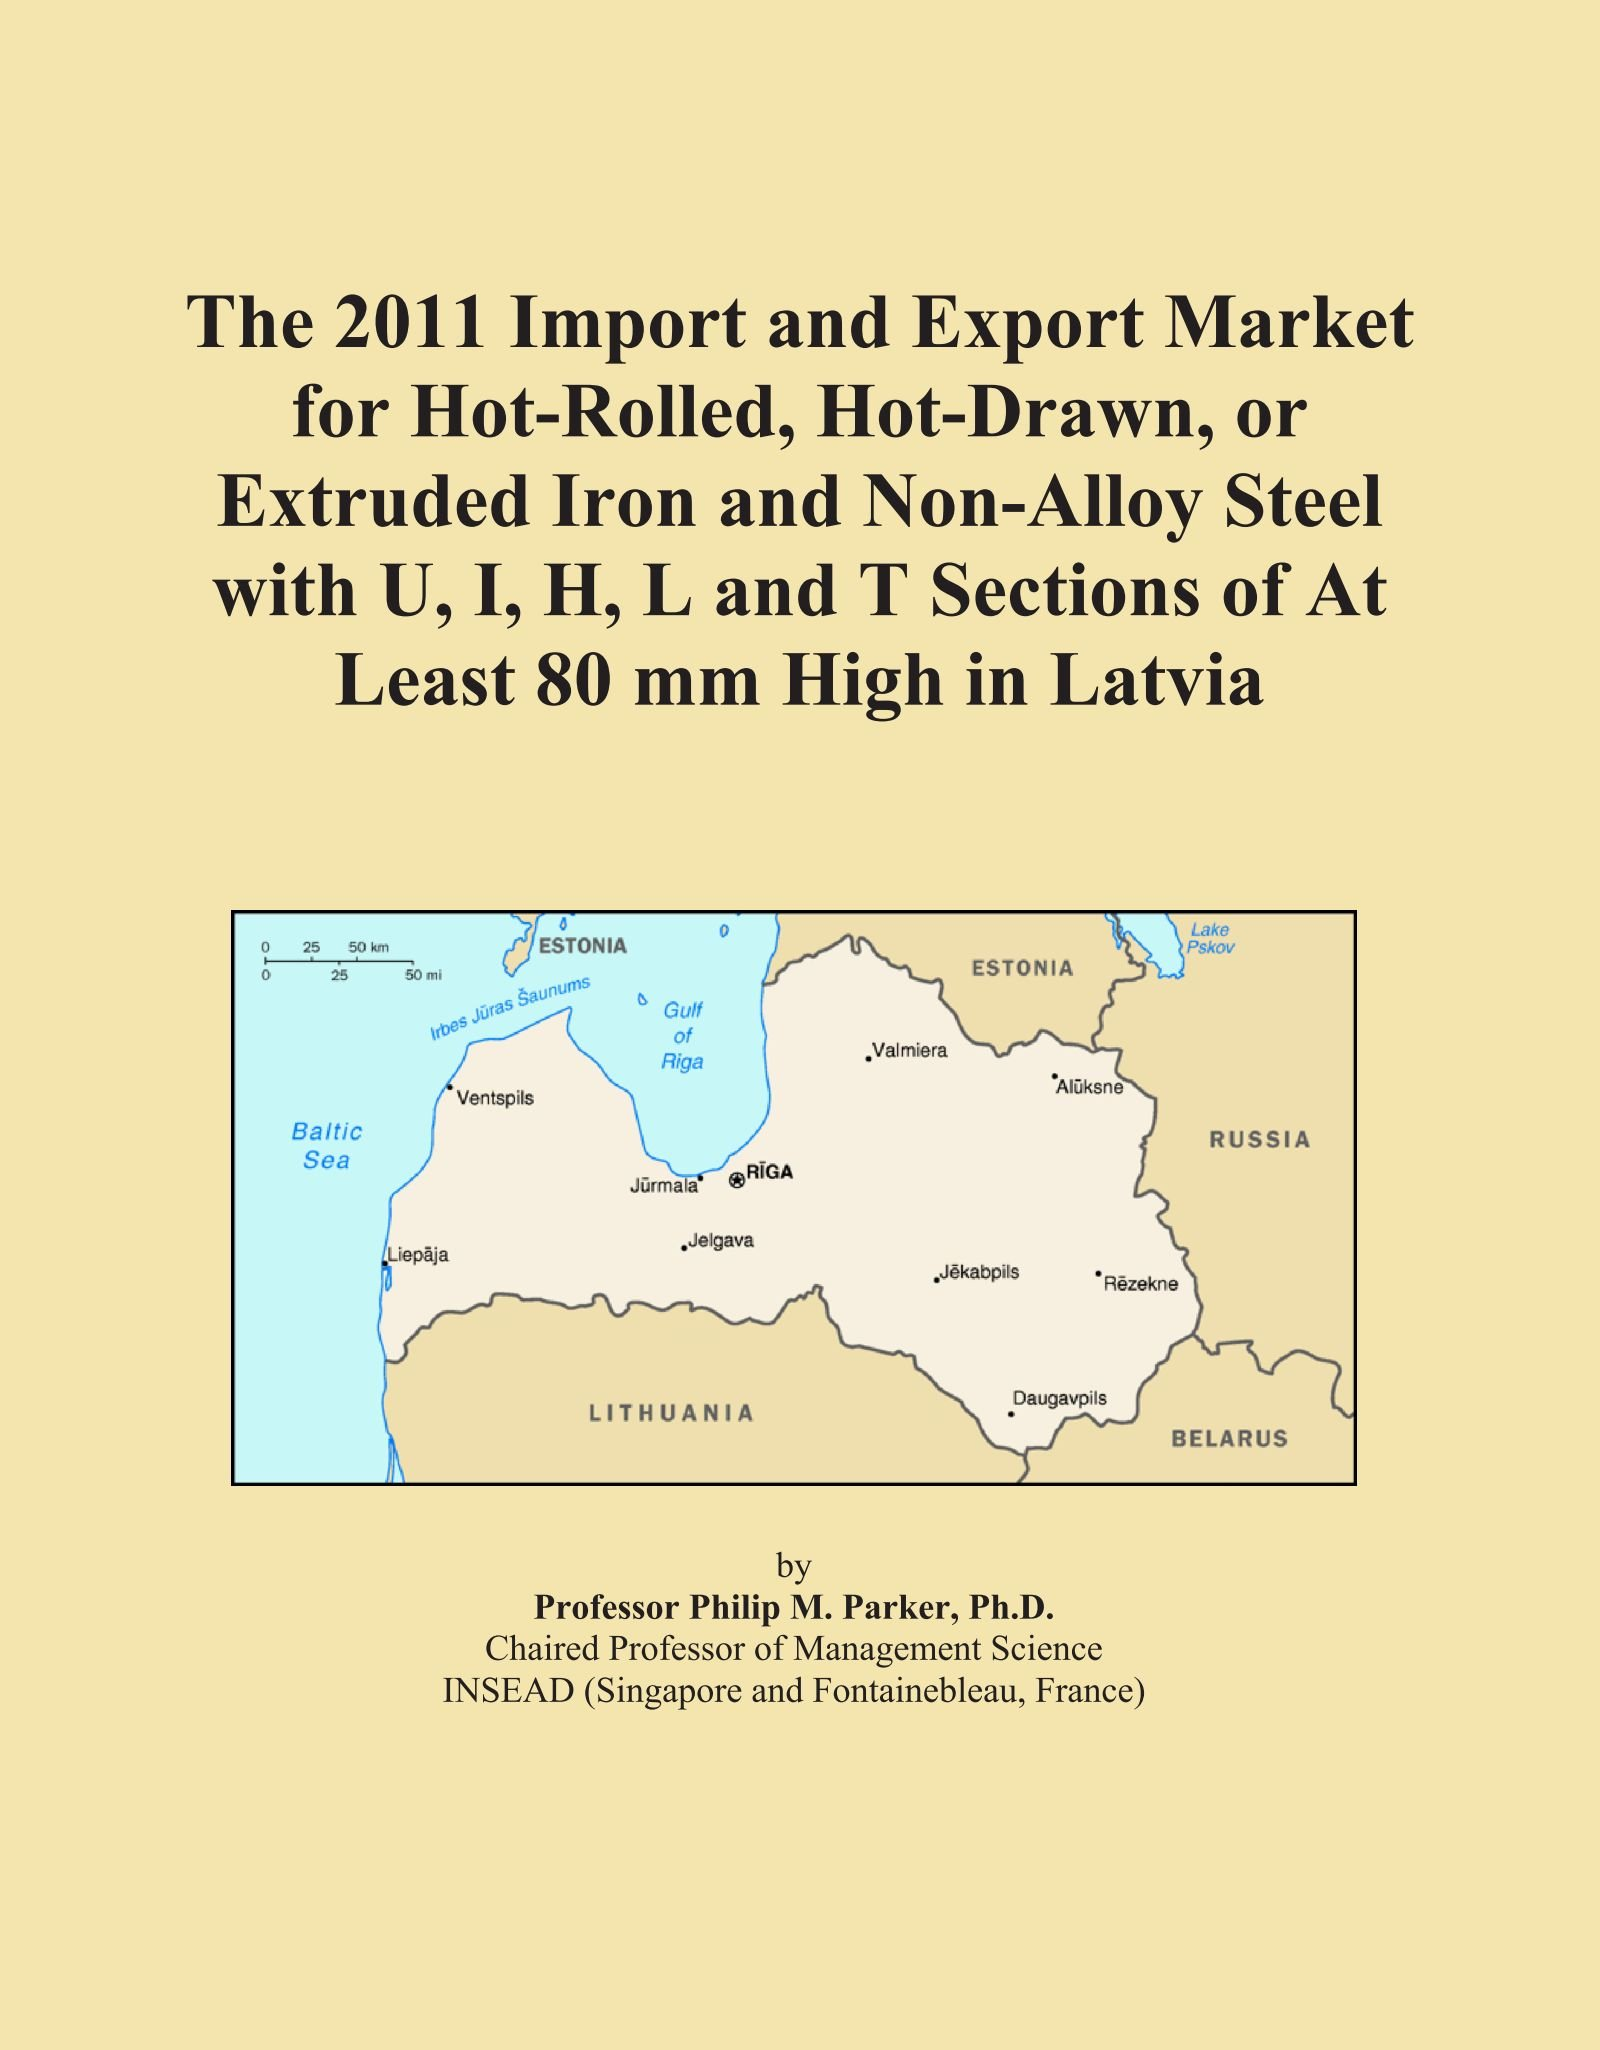 The 2011 Import and Export Market for Hot-Rolled, Hot-Drawn, or Extruded Iron and Non-Alloy Steel with U, I, H, L and T Sections of At Least 80 mm High in Latvia pdf